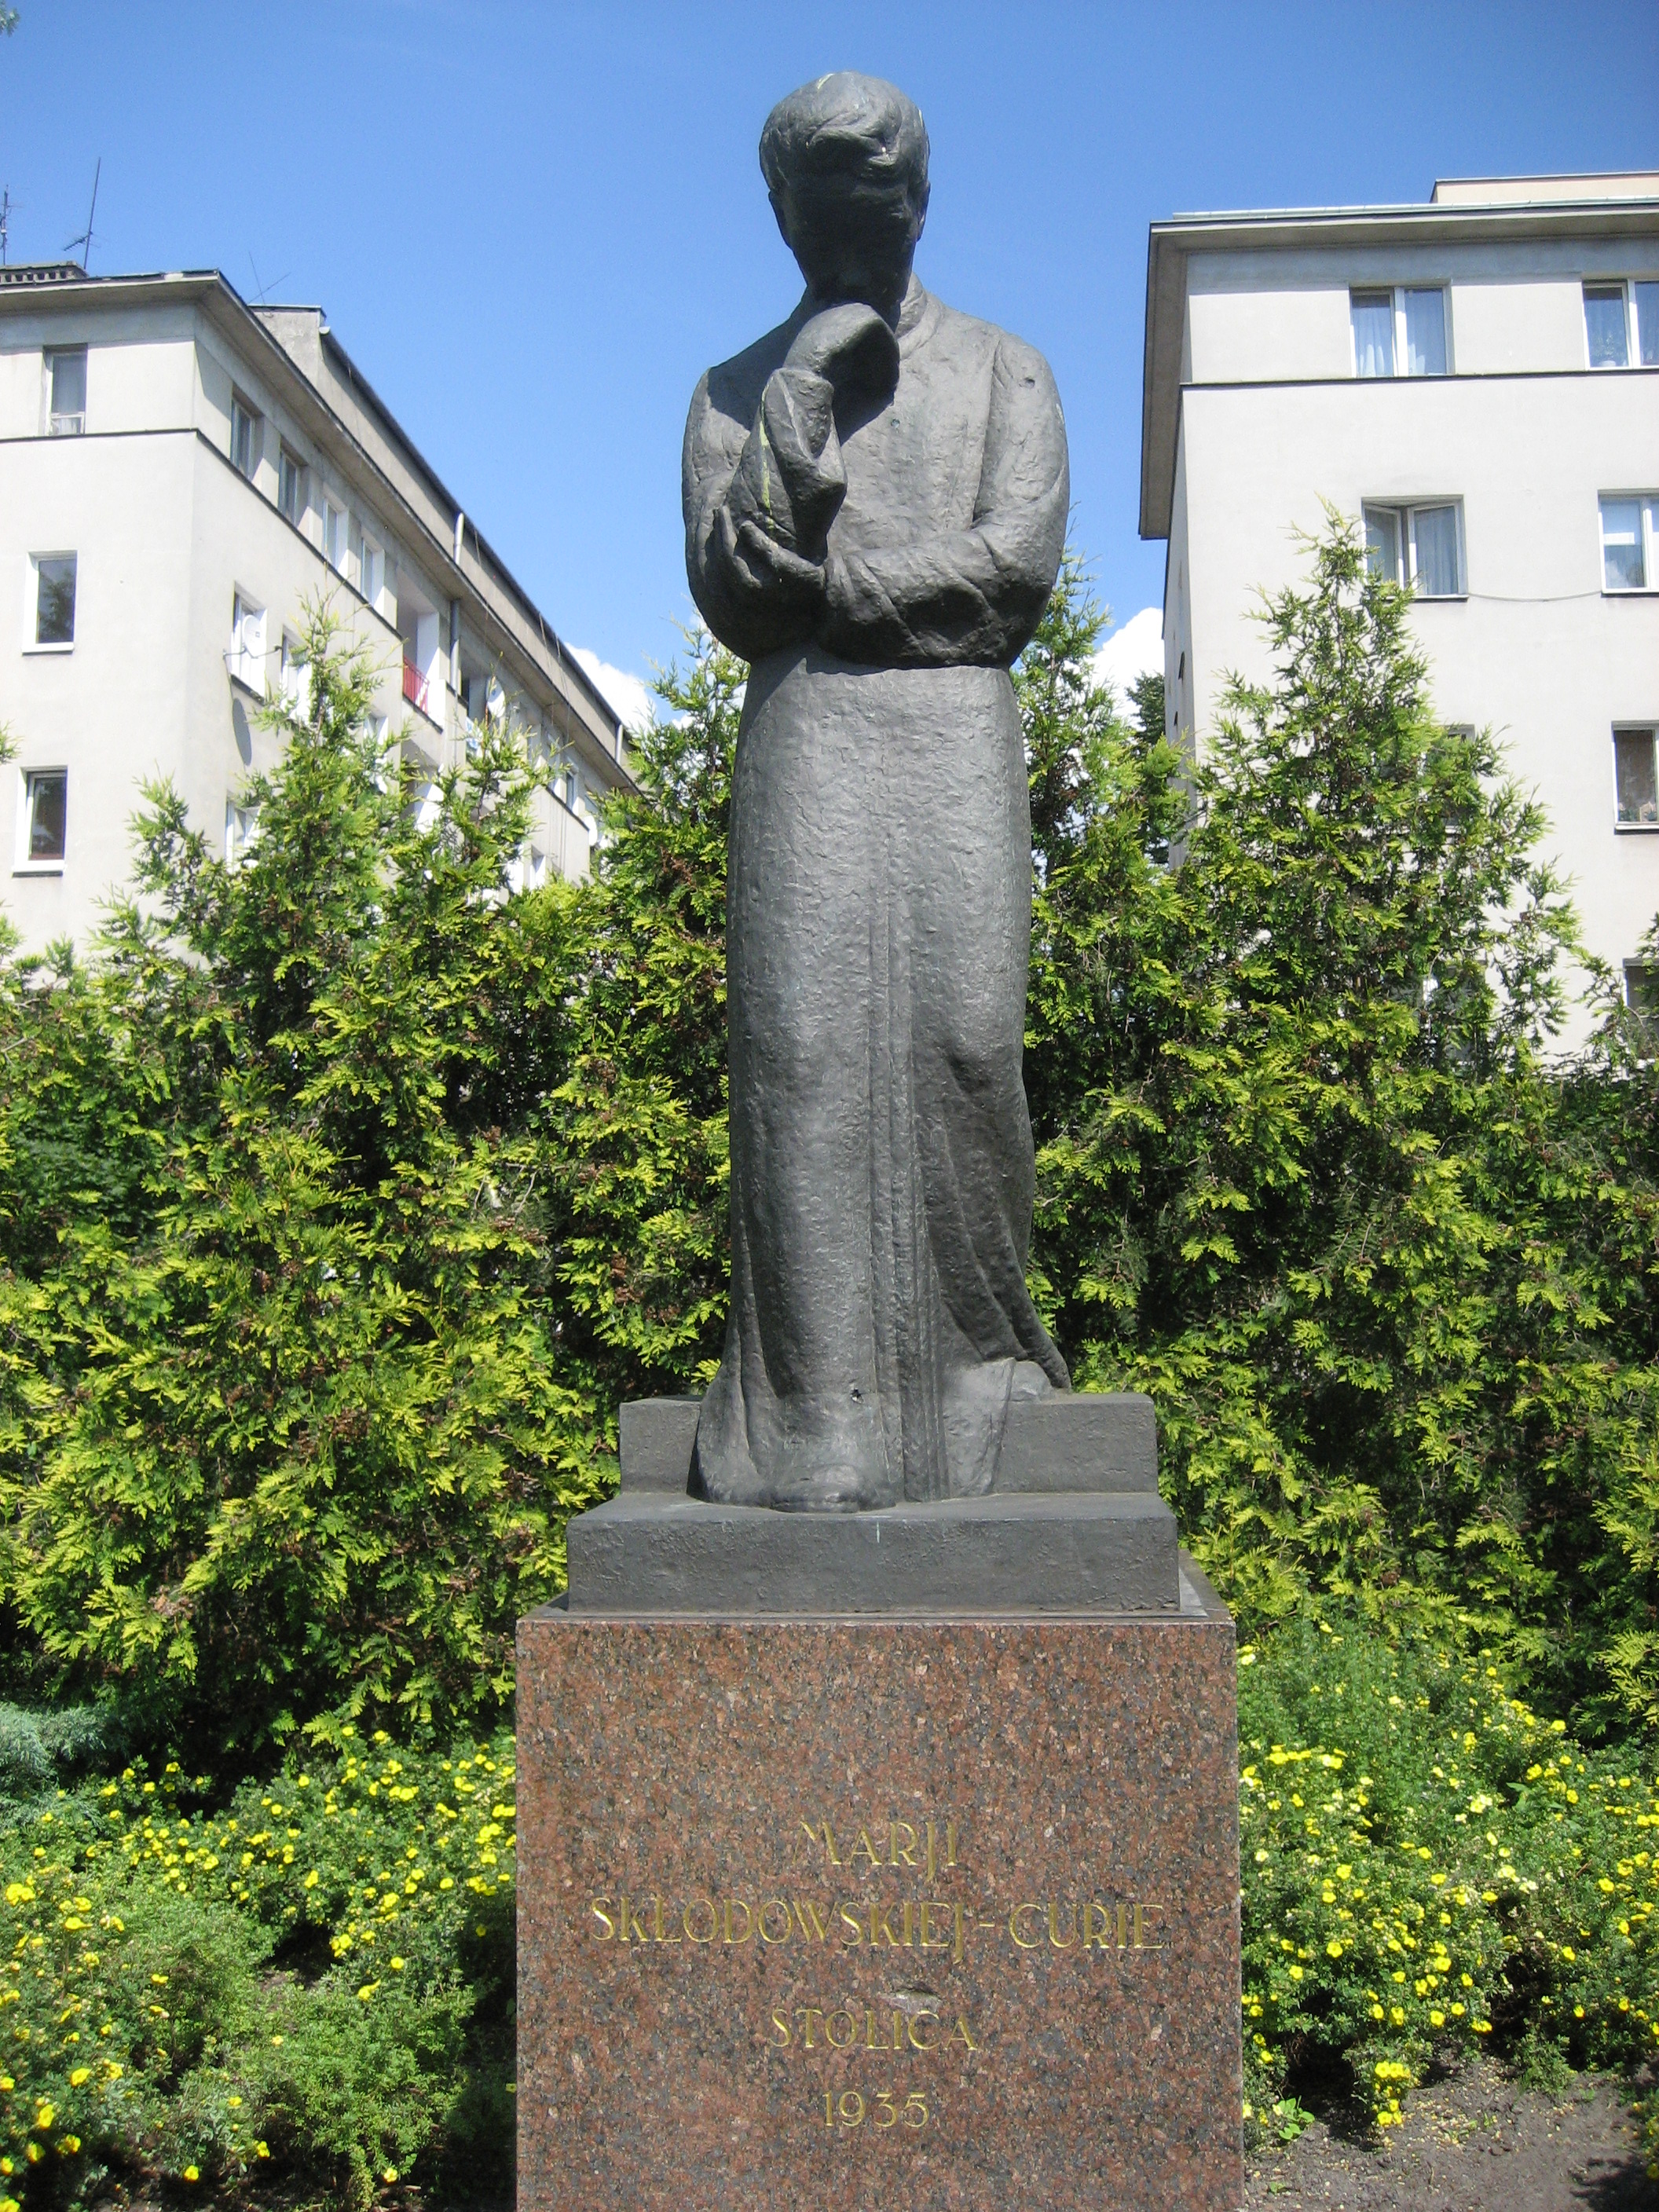 a description of marie sklodowska born in warsaw in 1867 Marie curiebiography born manya sklodowska in warsaw, poland, november 1867, madam marie curie has become one of the most famous scientists that.